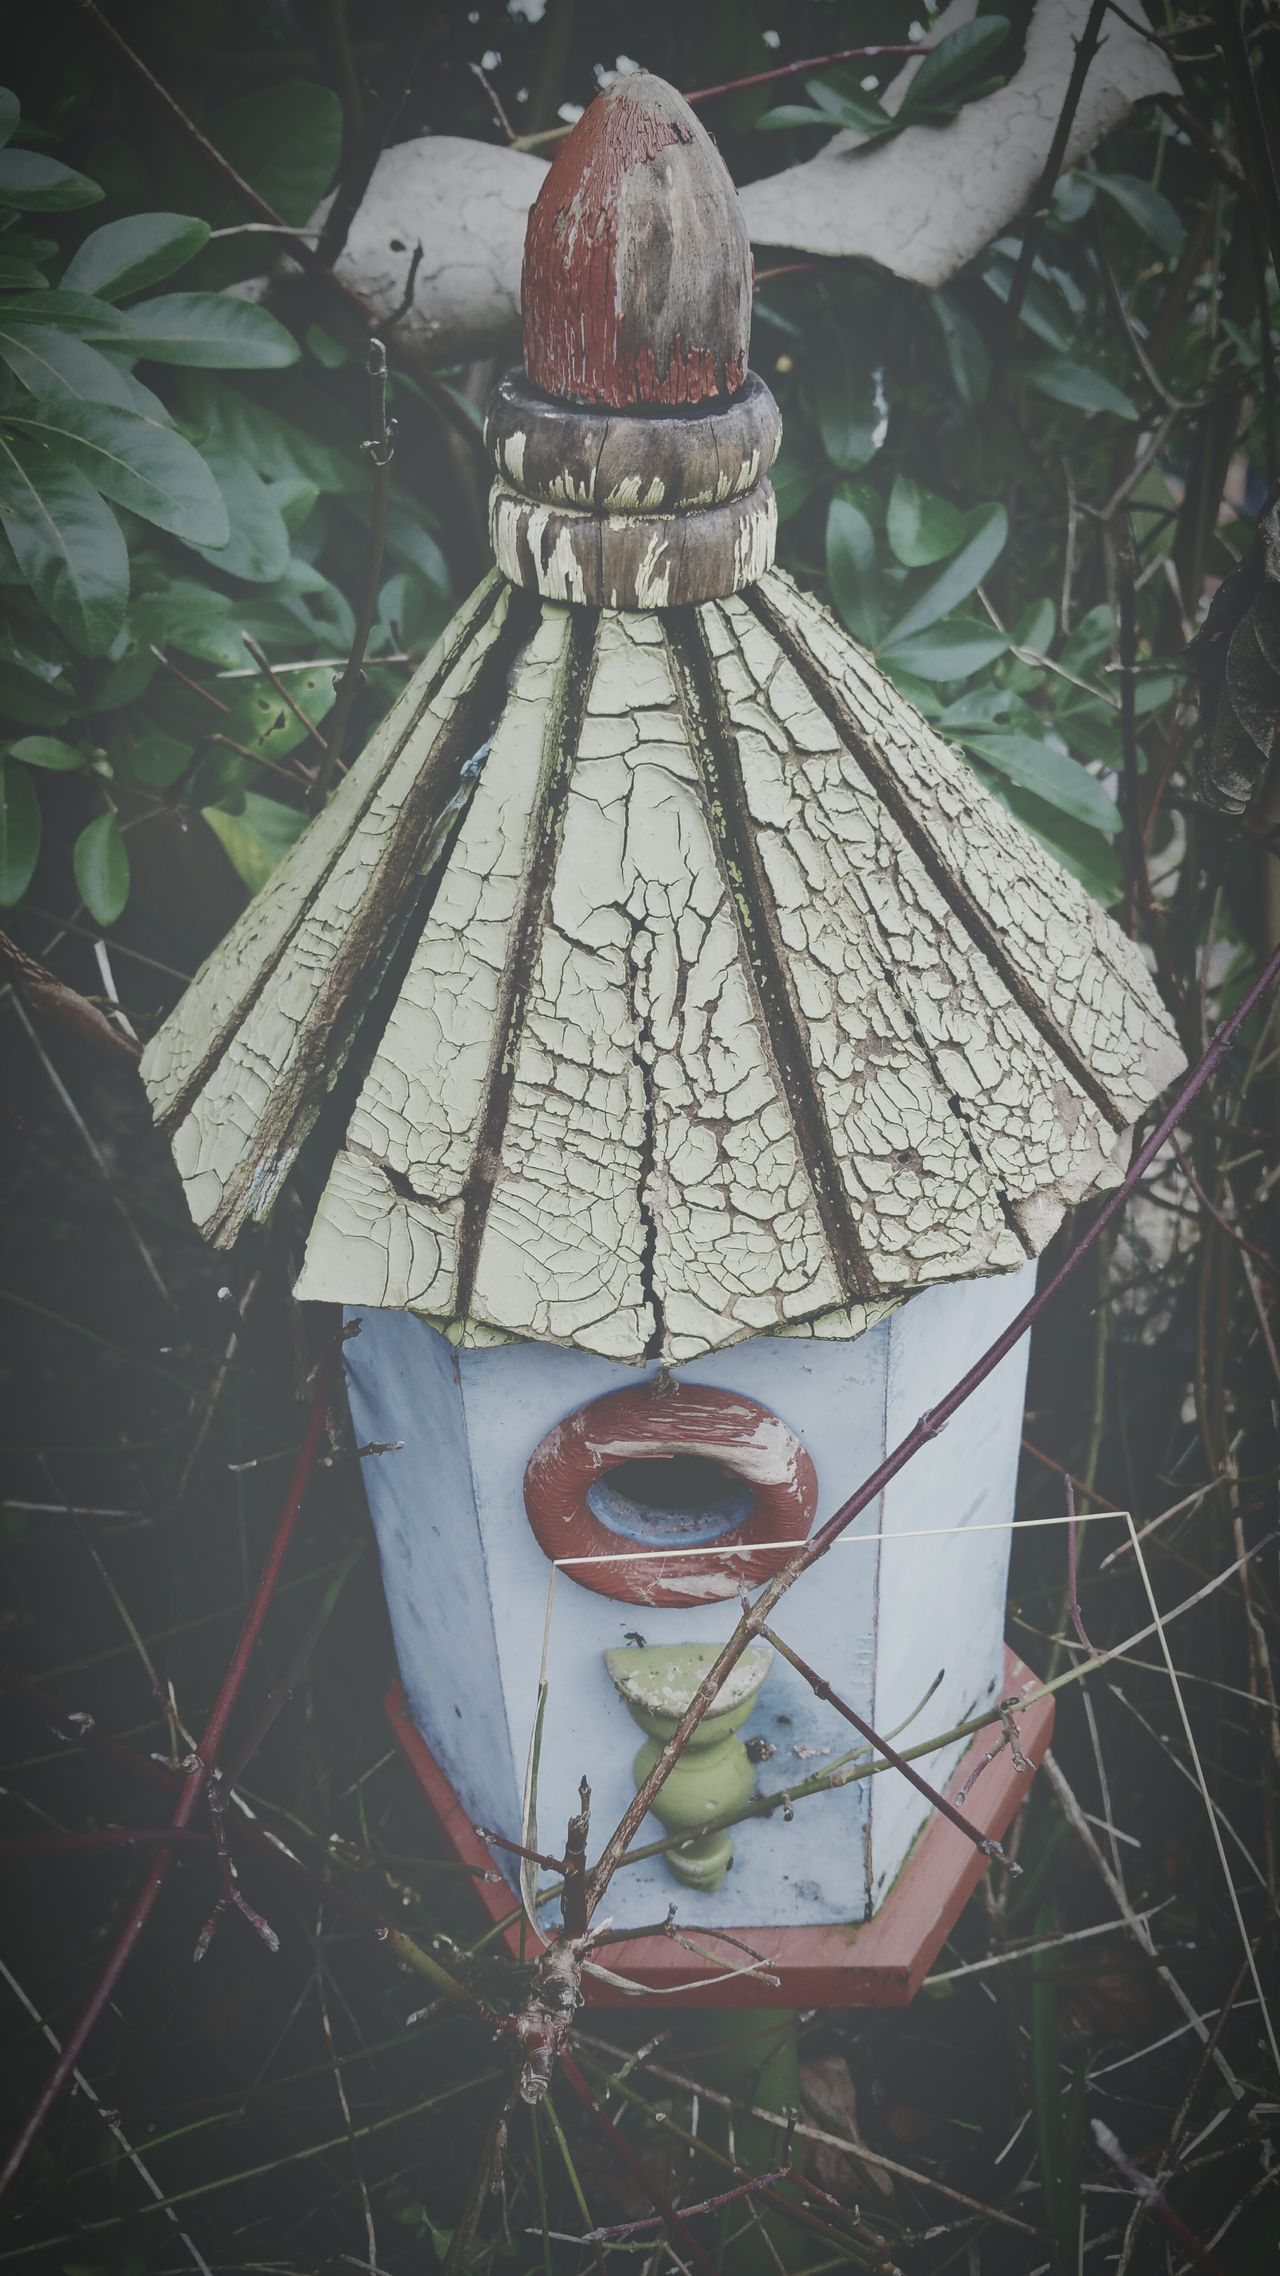 My Garden Needs A Paint Paint Weathered Aged Old Wood Bird Box Cracked Bird House